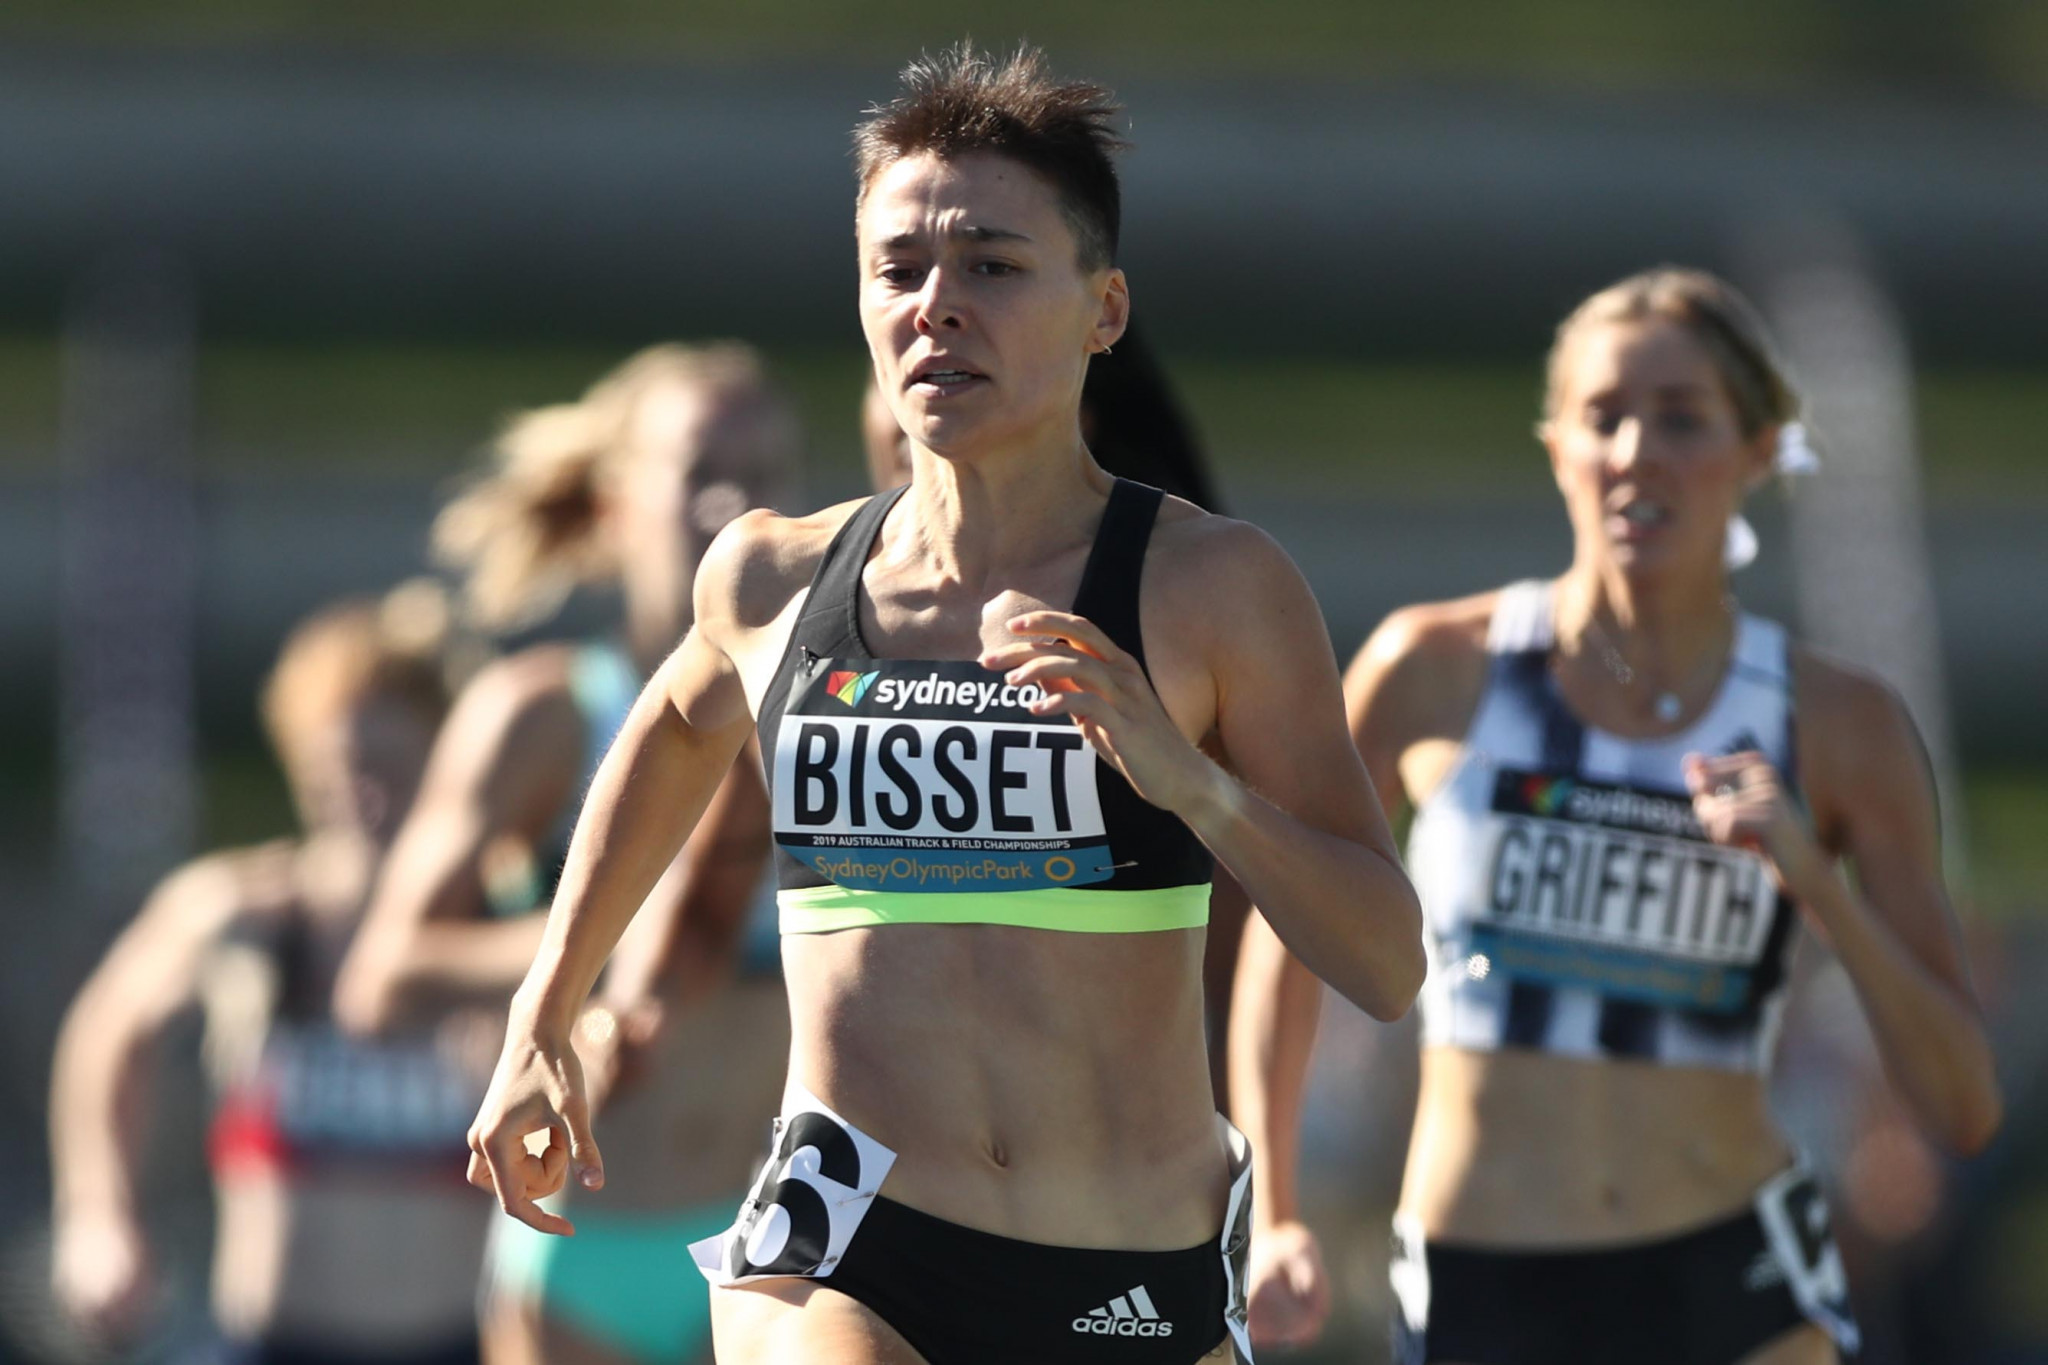 Catriona Bisset recorded the fourth fastest 800m time by an Australian woman at the Australian UniSport National Championships in April ©Getty Images